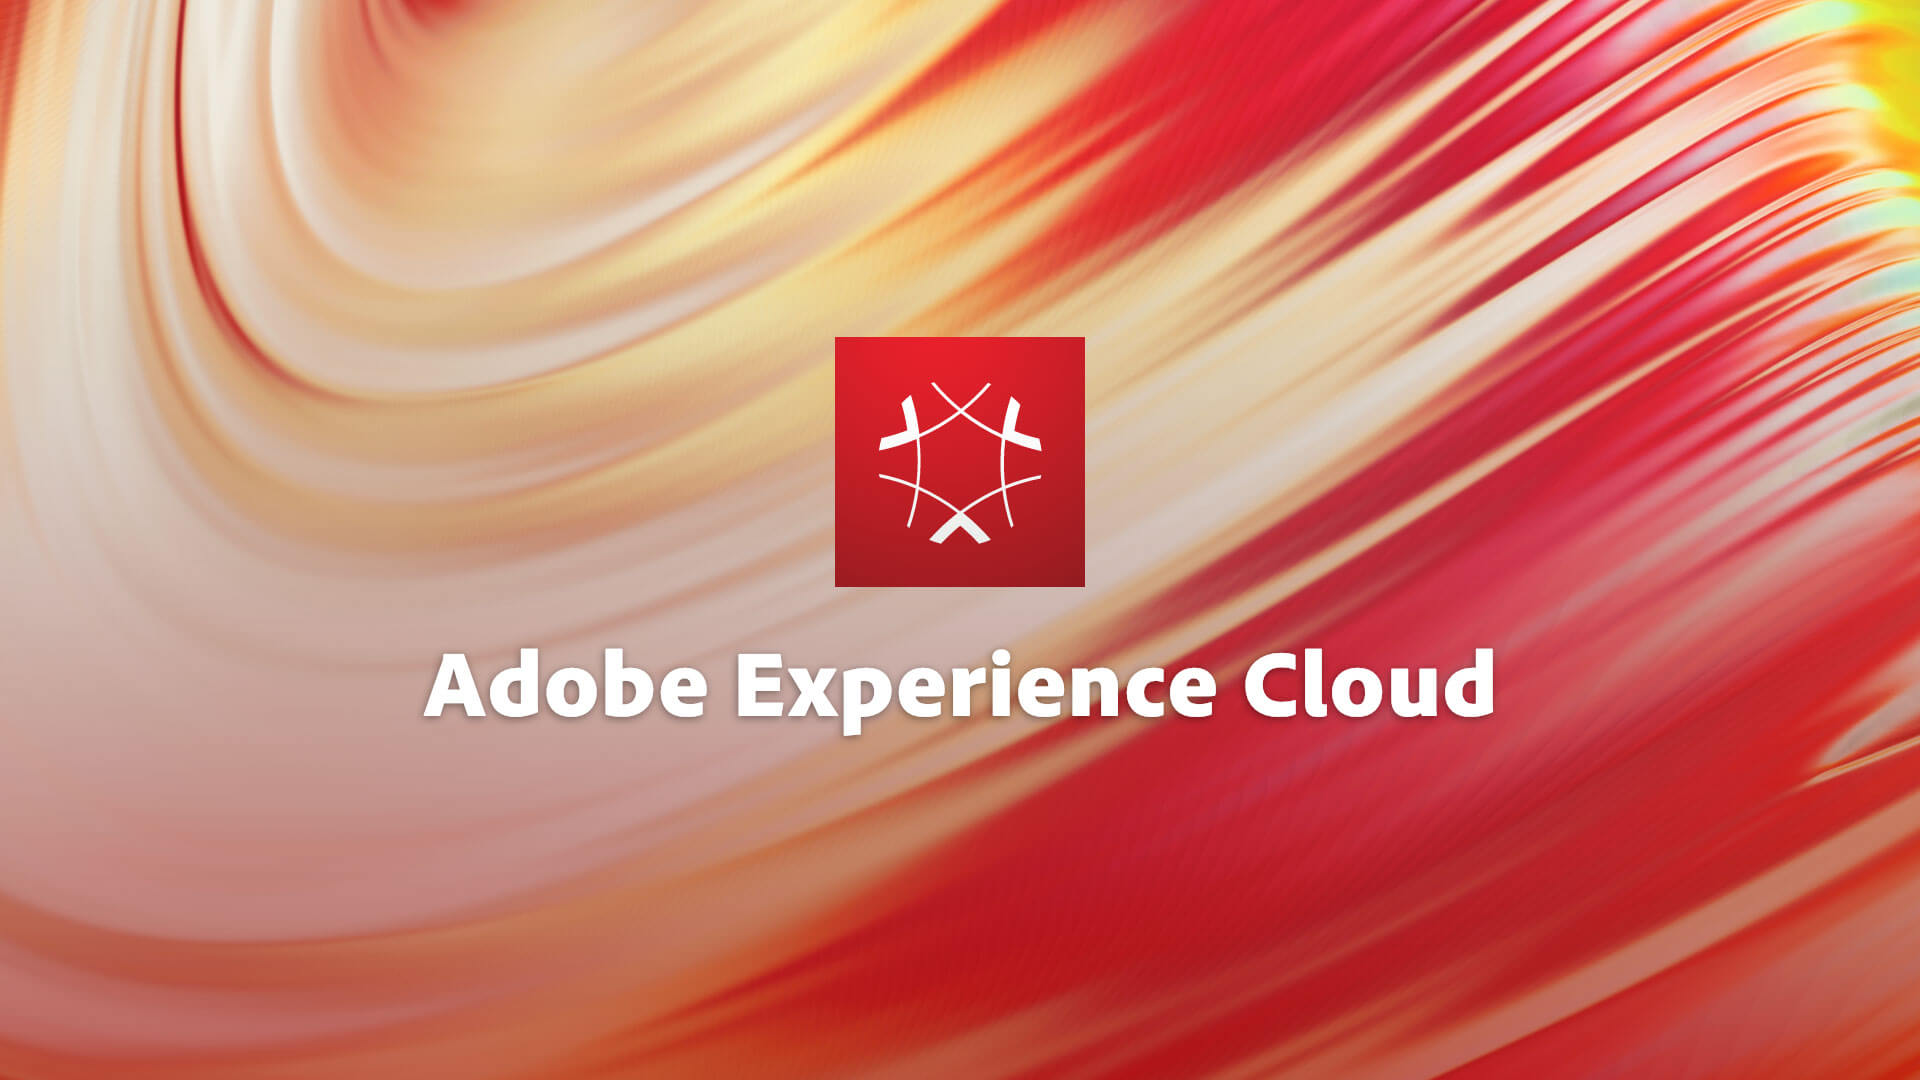 Adobe Launches Adobe Experience Cloud